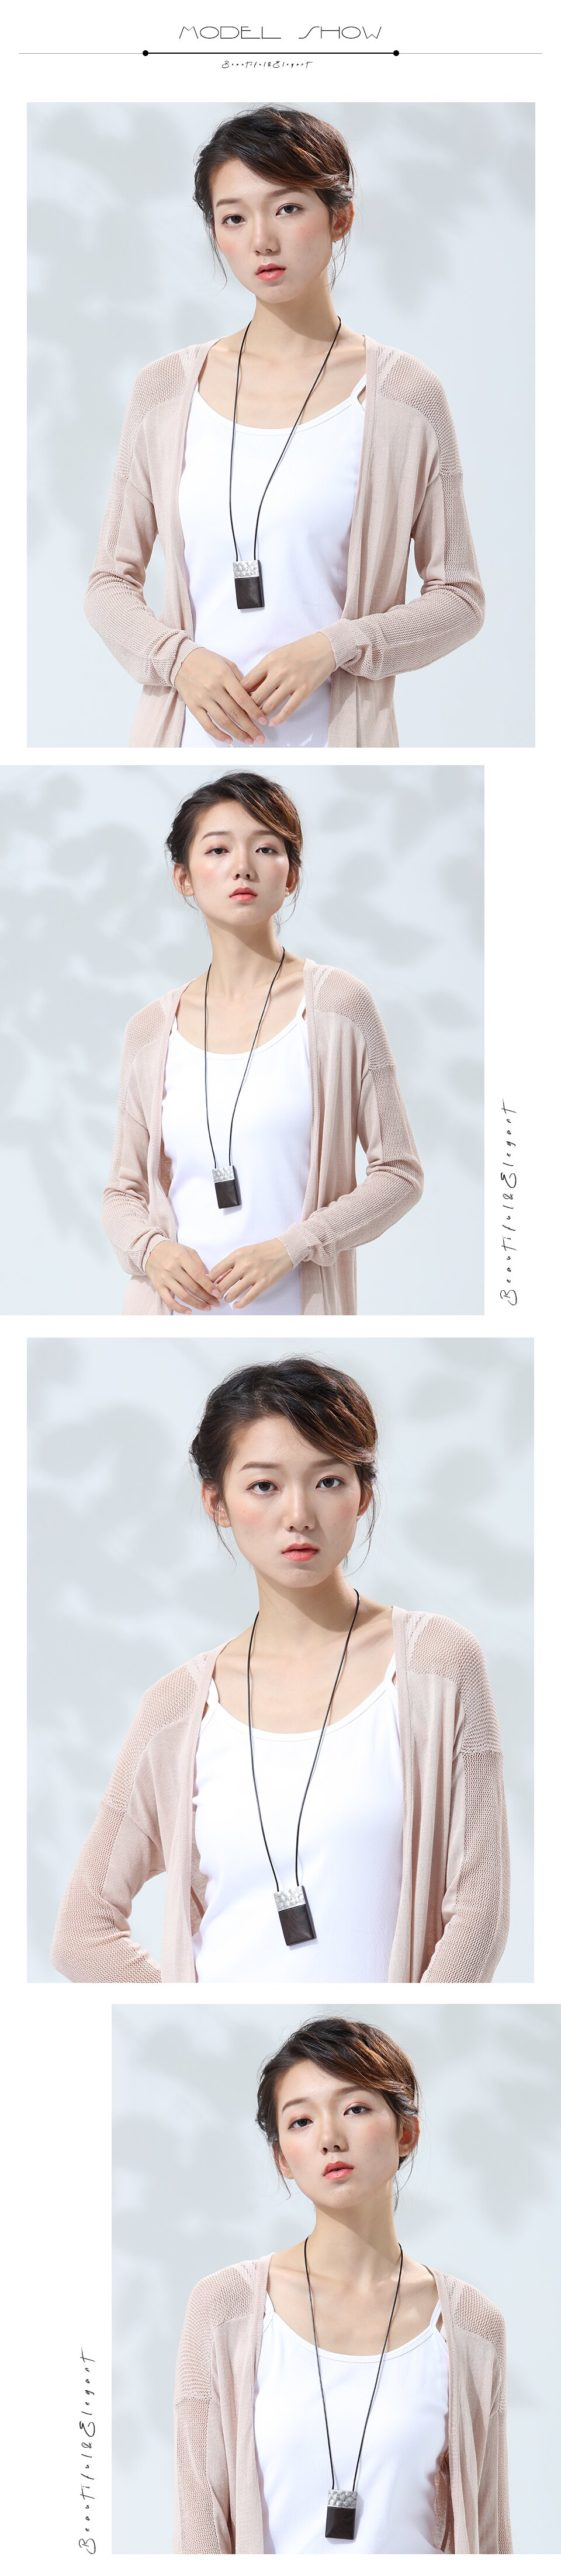 Vintage Pendants Necklaces Fashion Jewelry For Women Handmade Rectangle Sandalwood Long Female Necklace Girl Rope Sweater Chain